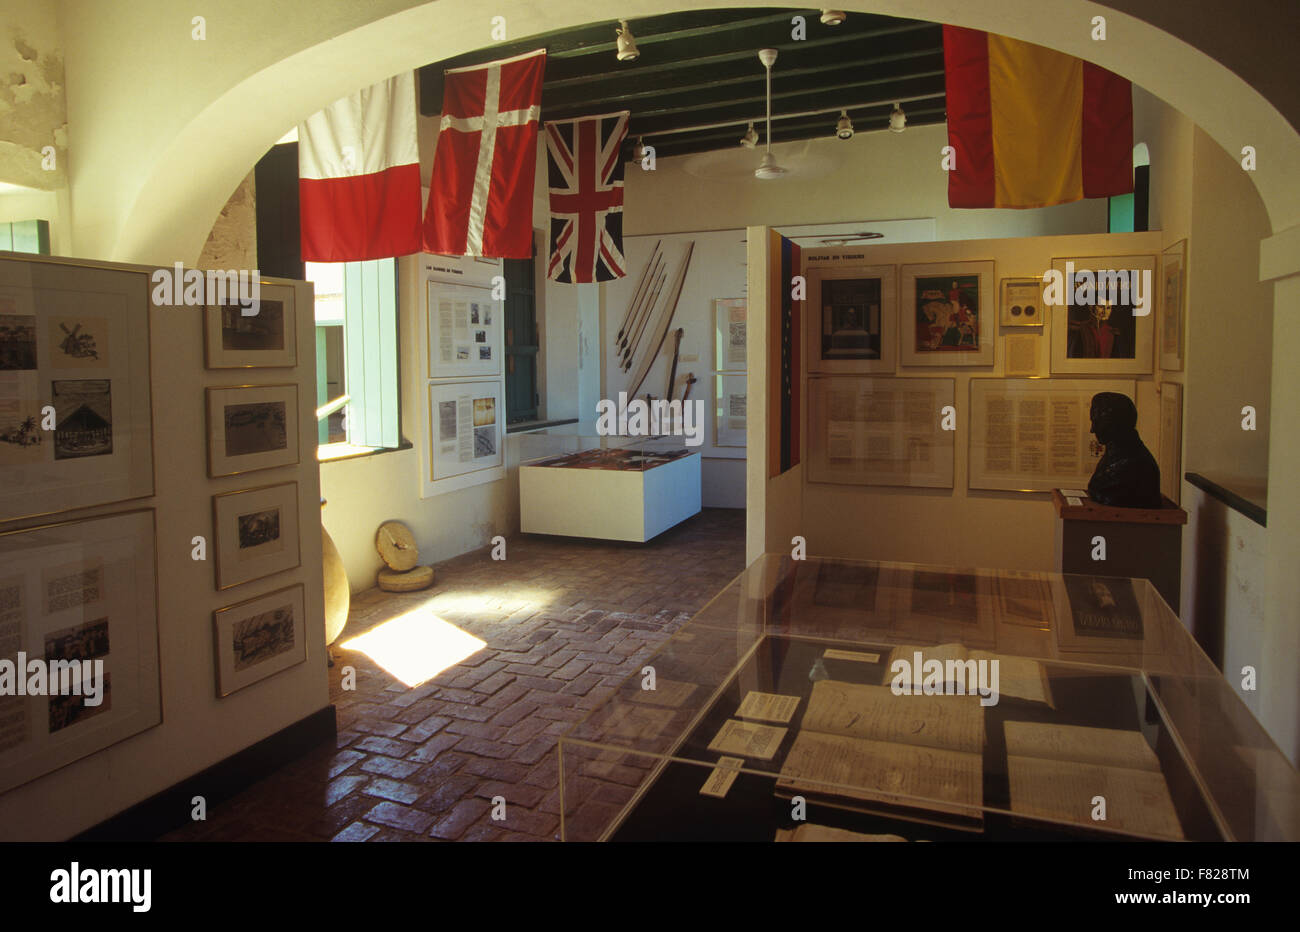 Exhibit at Fortin Conde de Mirasol (last fort built by Spain in the New World), Isabel Segunda, Vieques Island, Stock Photo